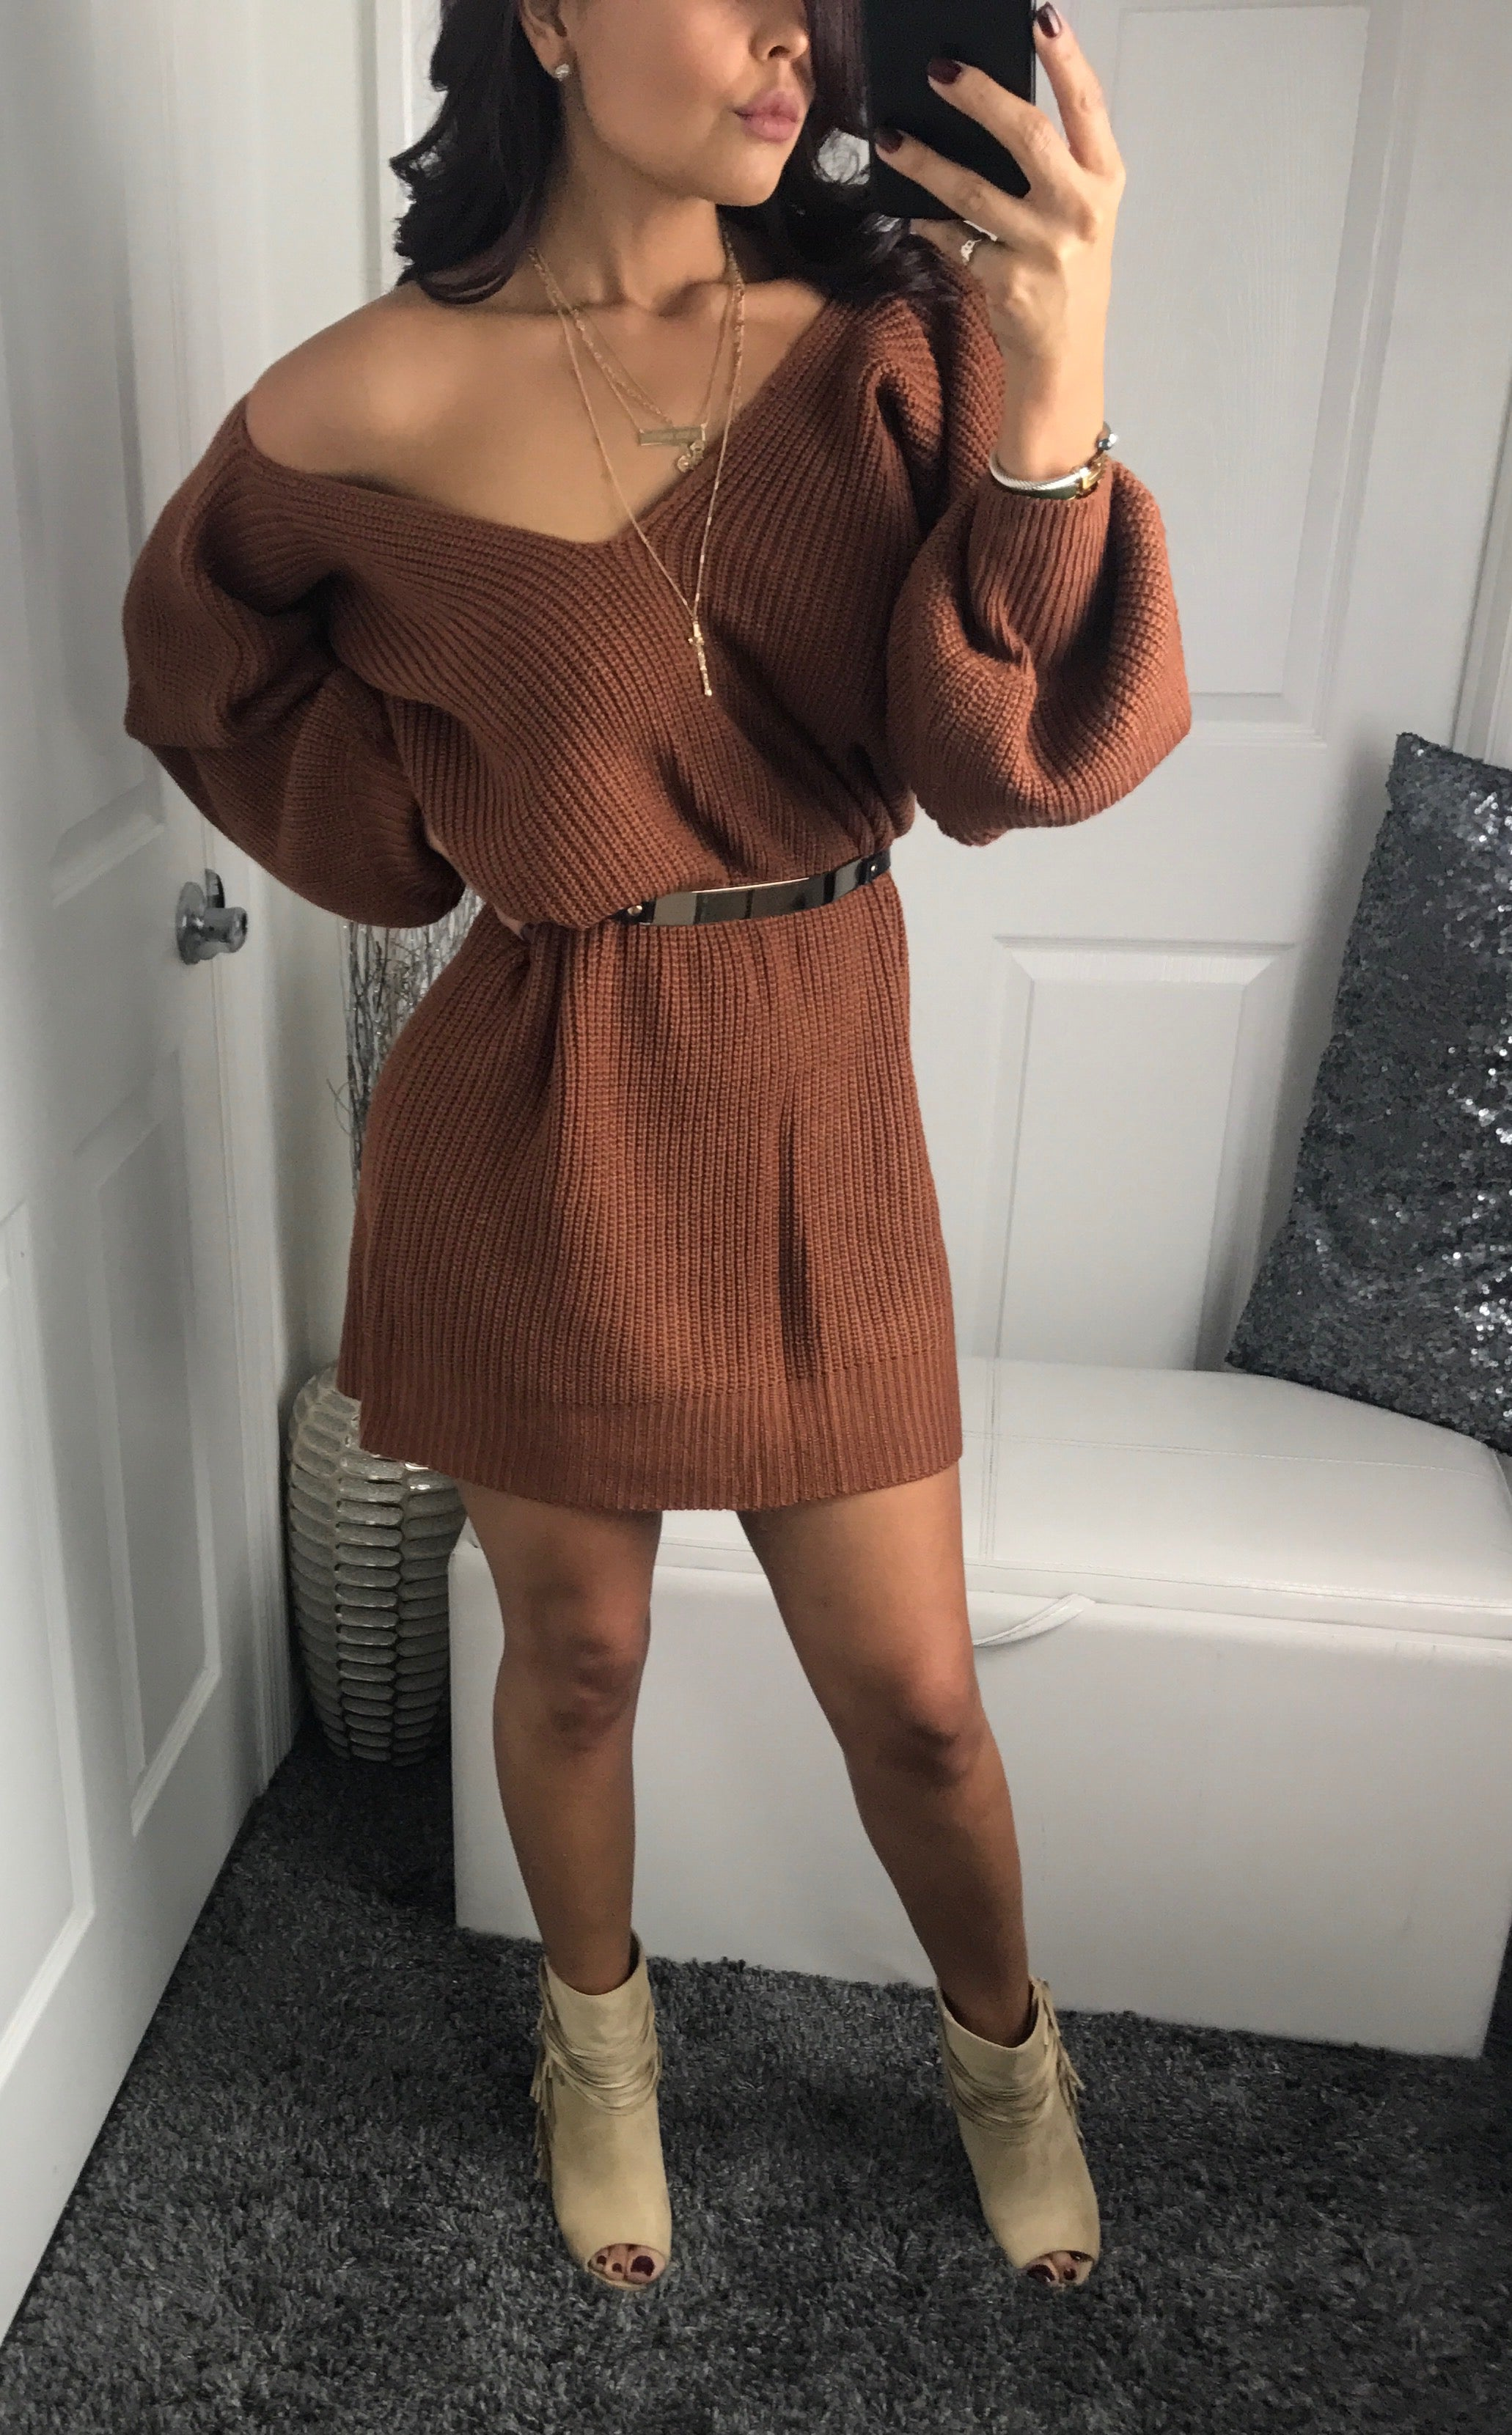 Adrianna Sweater Dress - Thanksgiving Outfit - by Halos Boutique